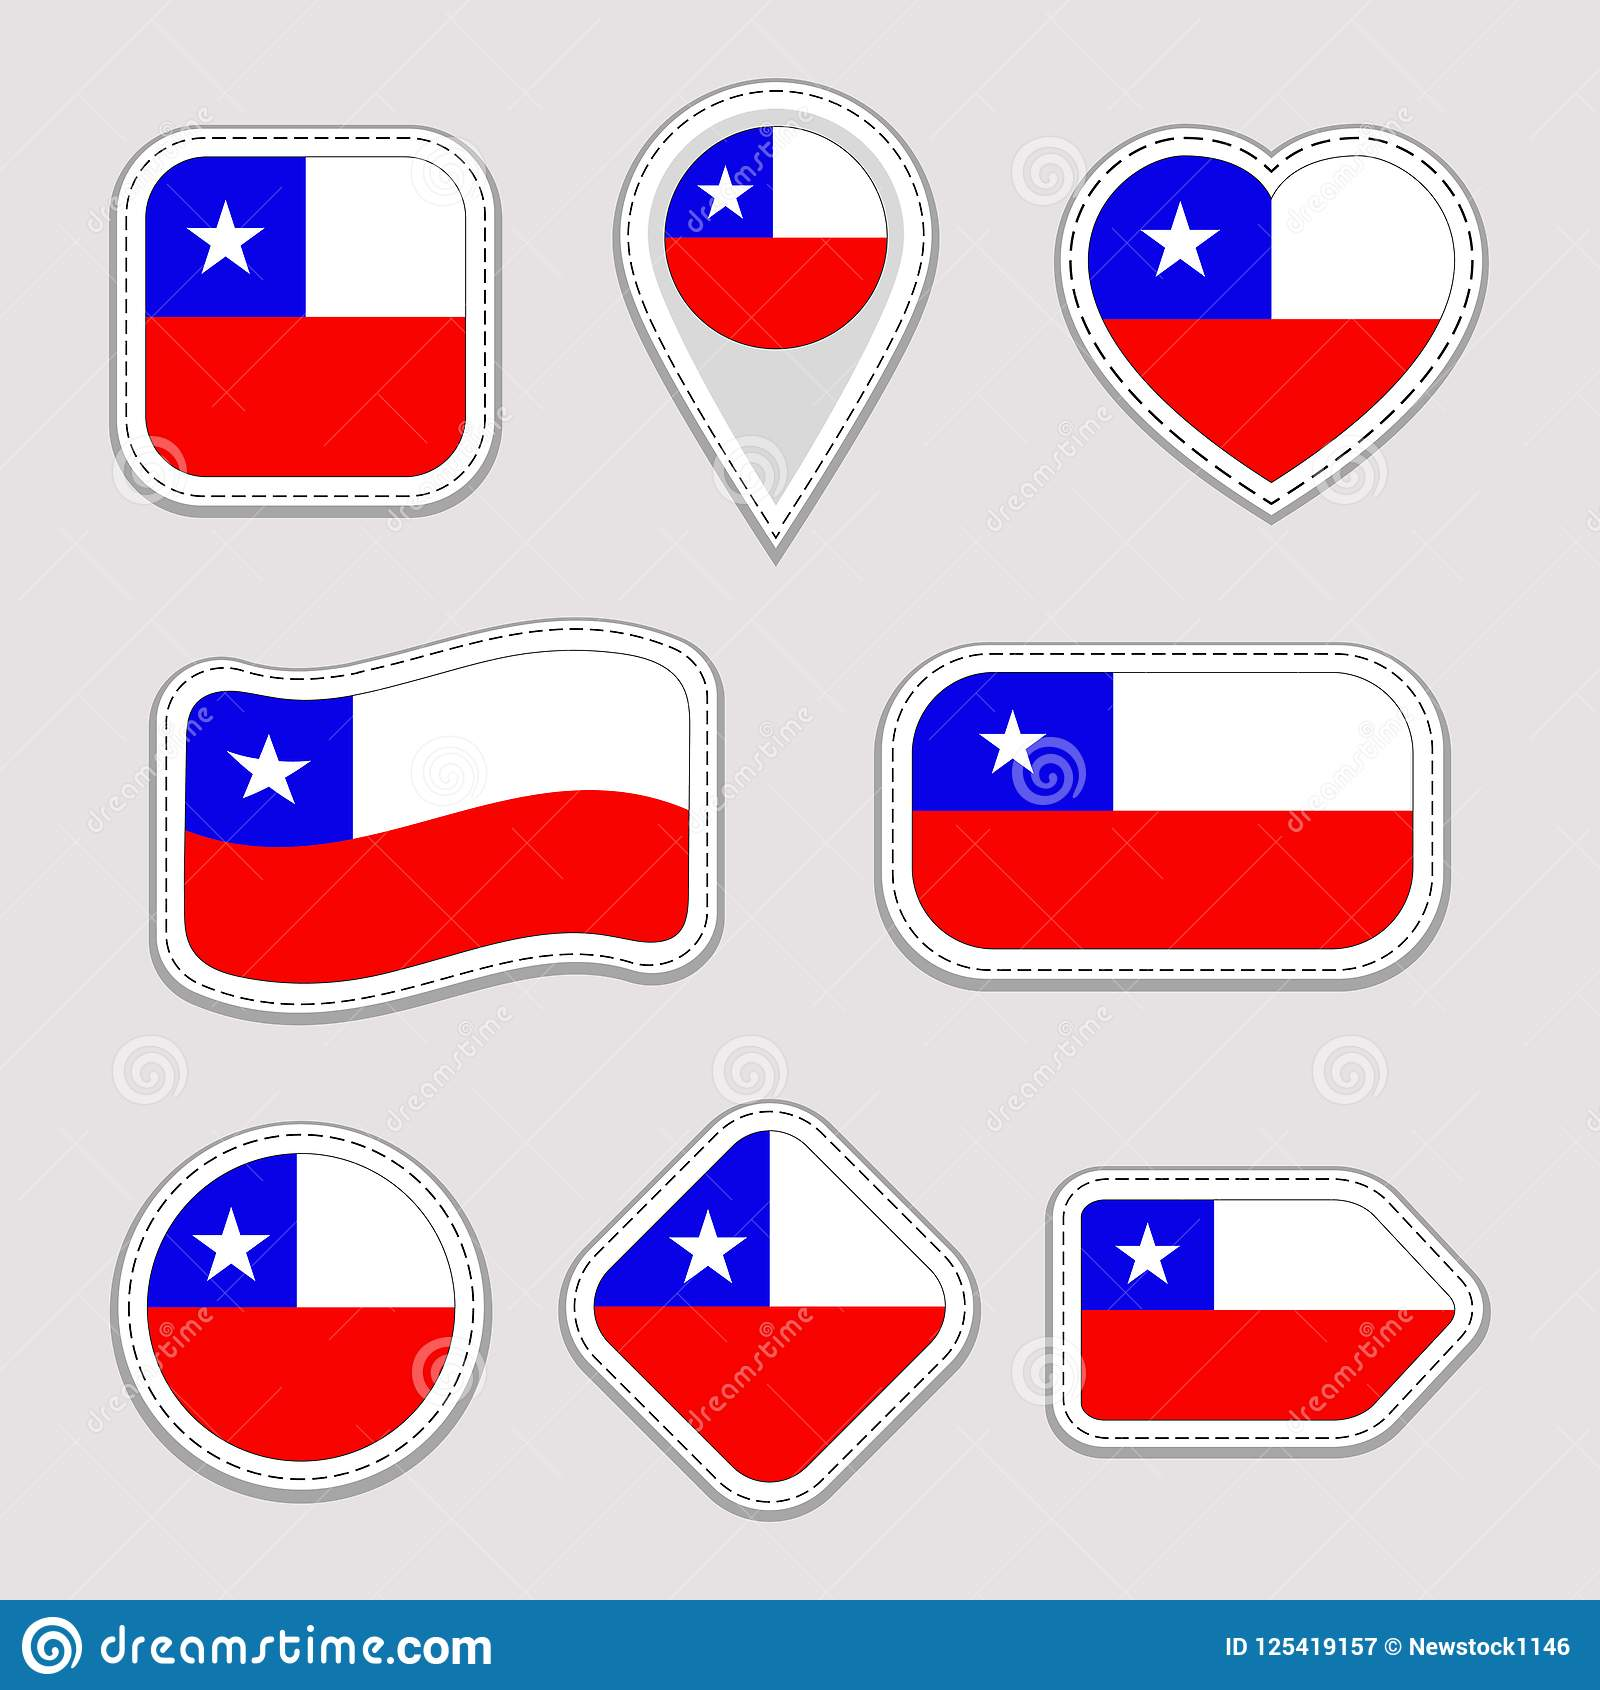 Chile Flag Vector Set Chilean Flags Stickers Collection Isolated